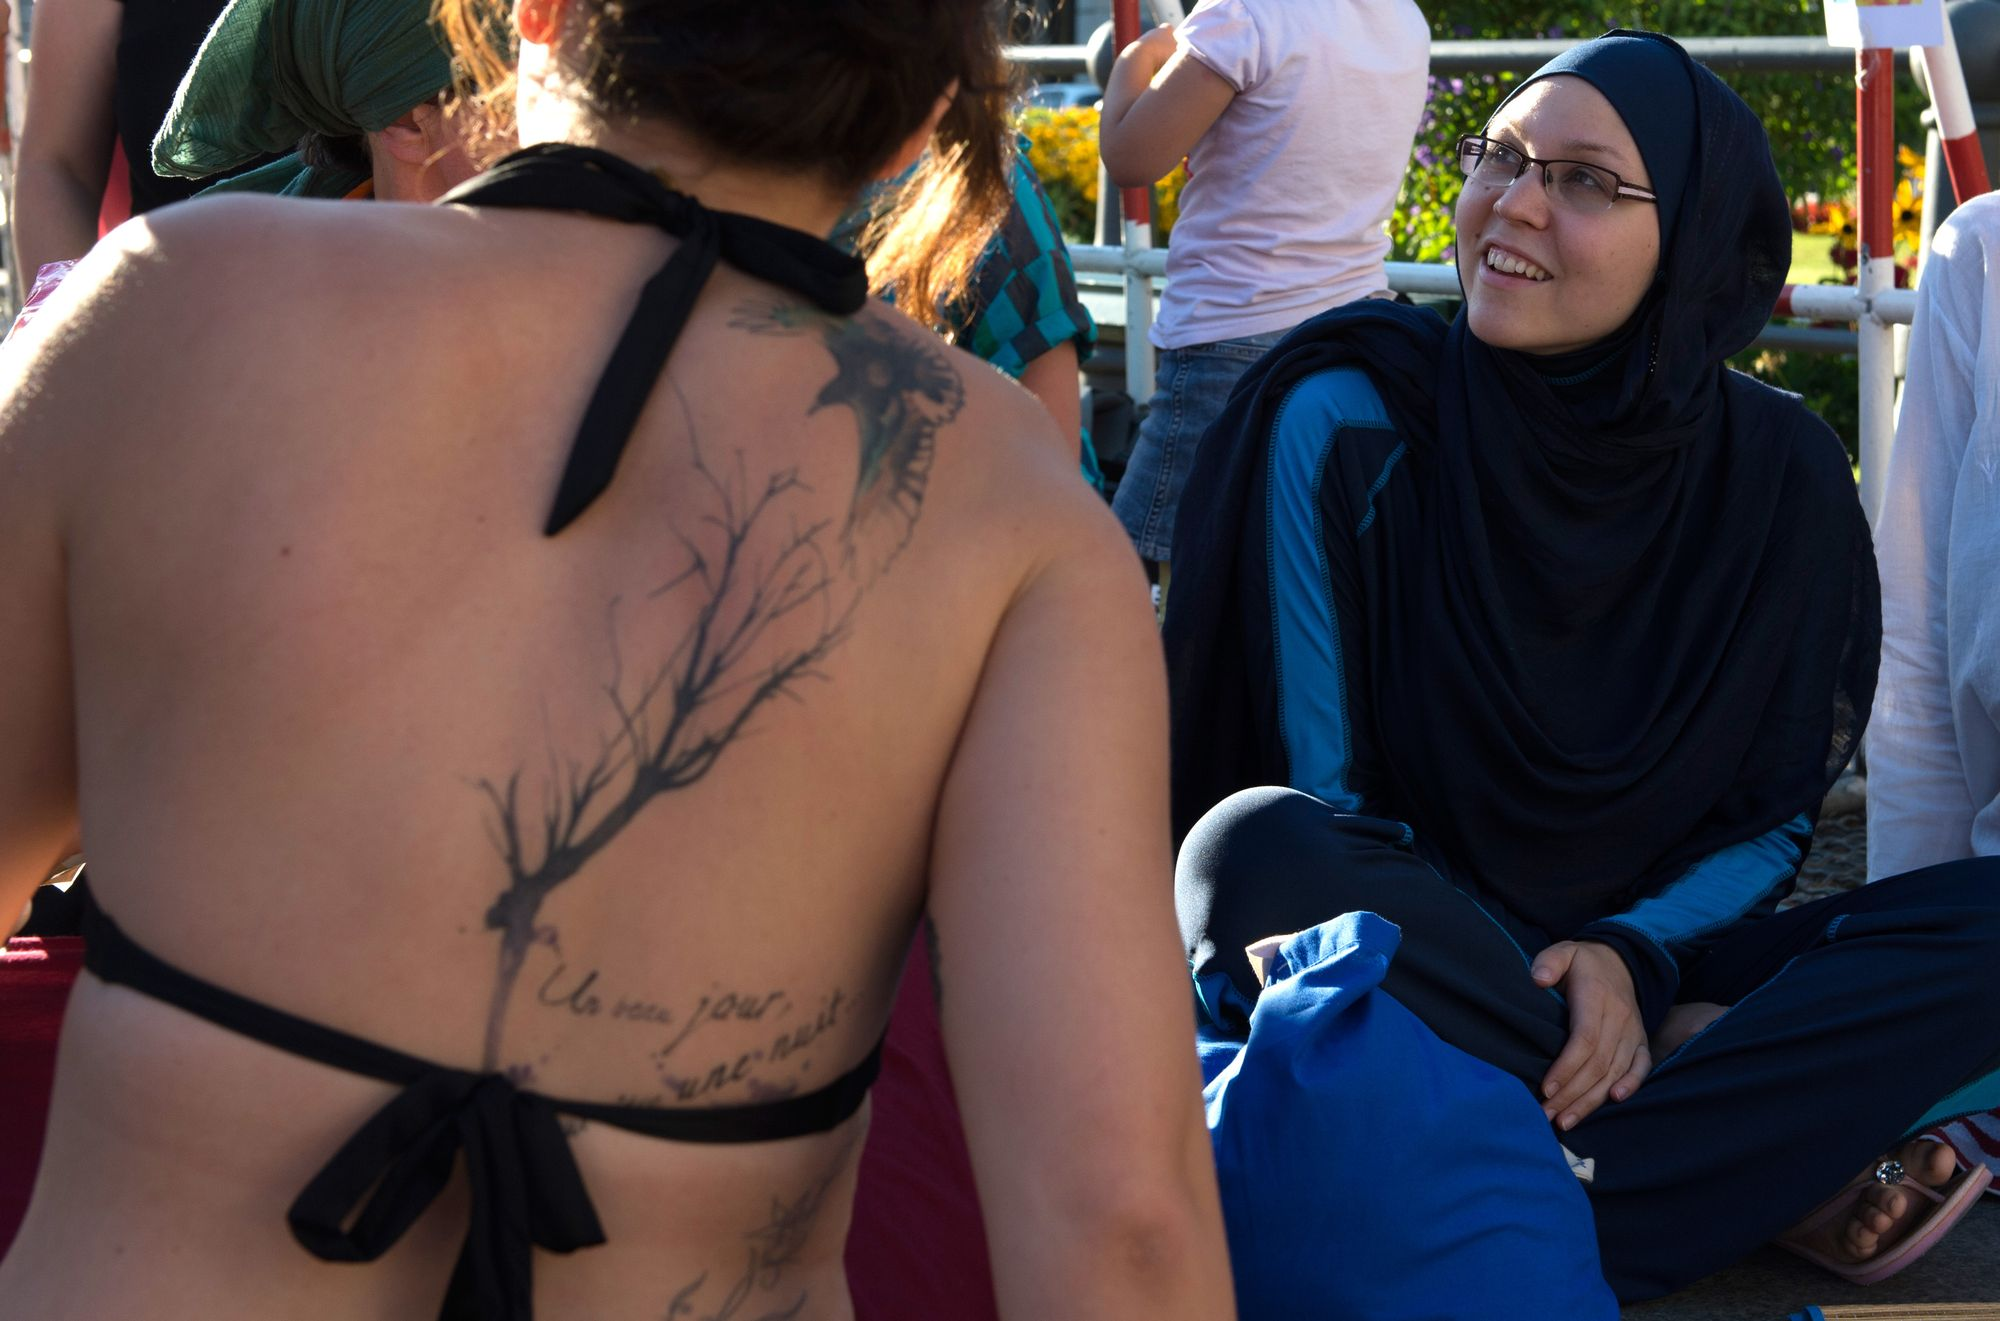 Manifestation contre l'interdiction du burkini, le 25 août 2016 à Paris.